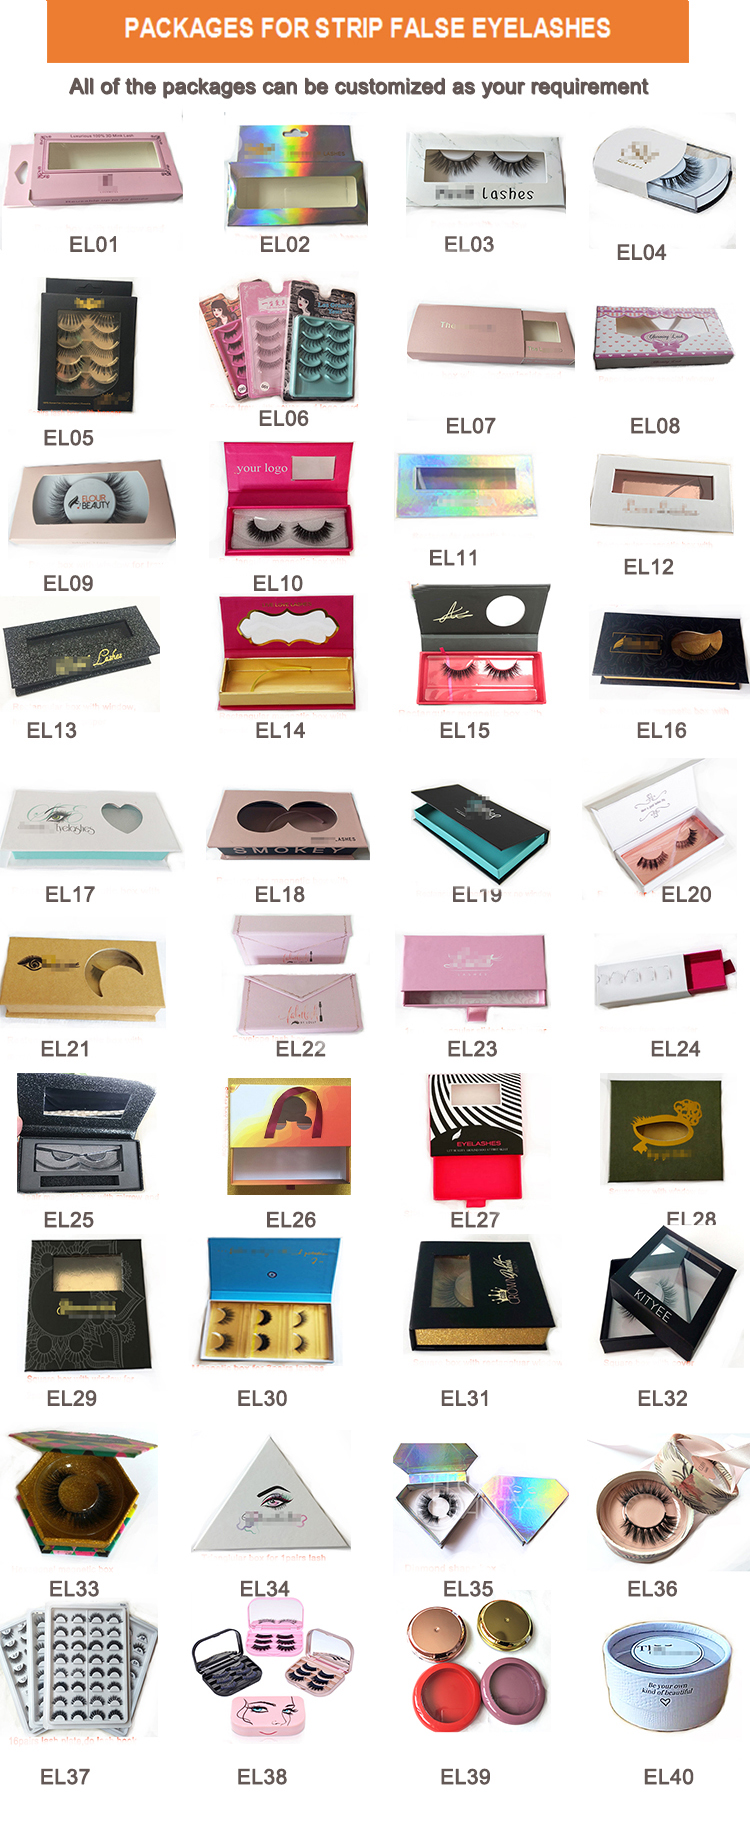 elour lashes private label eyelash package boxes wholesale free design.jpg